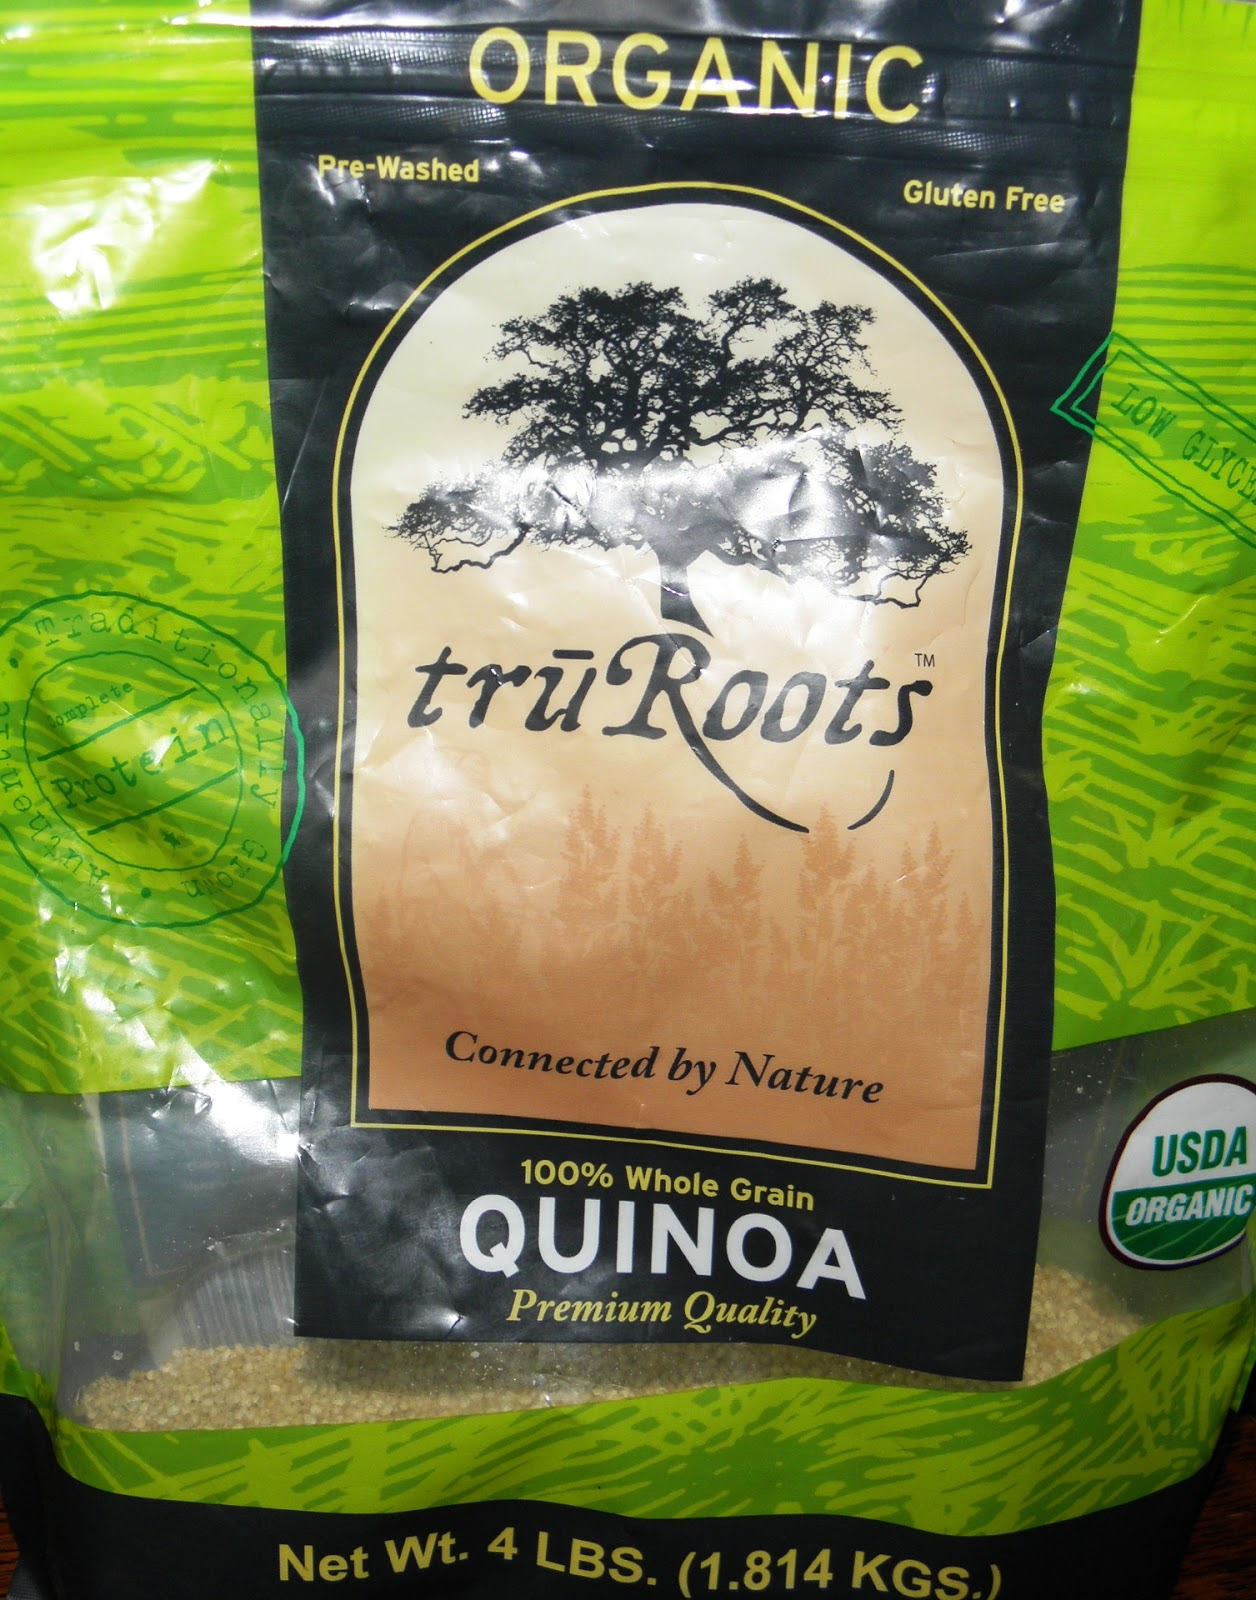 File Name   PA210371 JPG Resolution   1256 x 1600 pixel Image Type    Quinoa Rice Costco